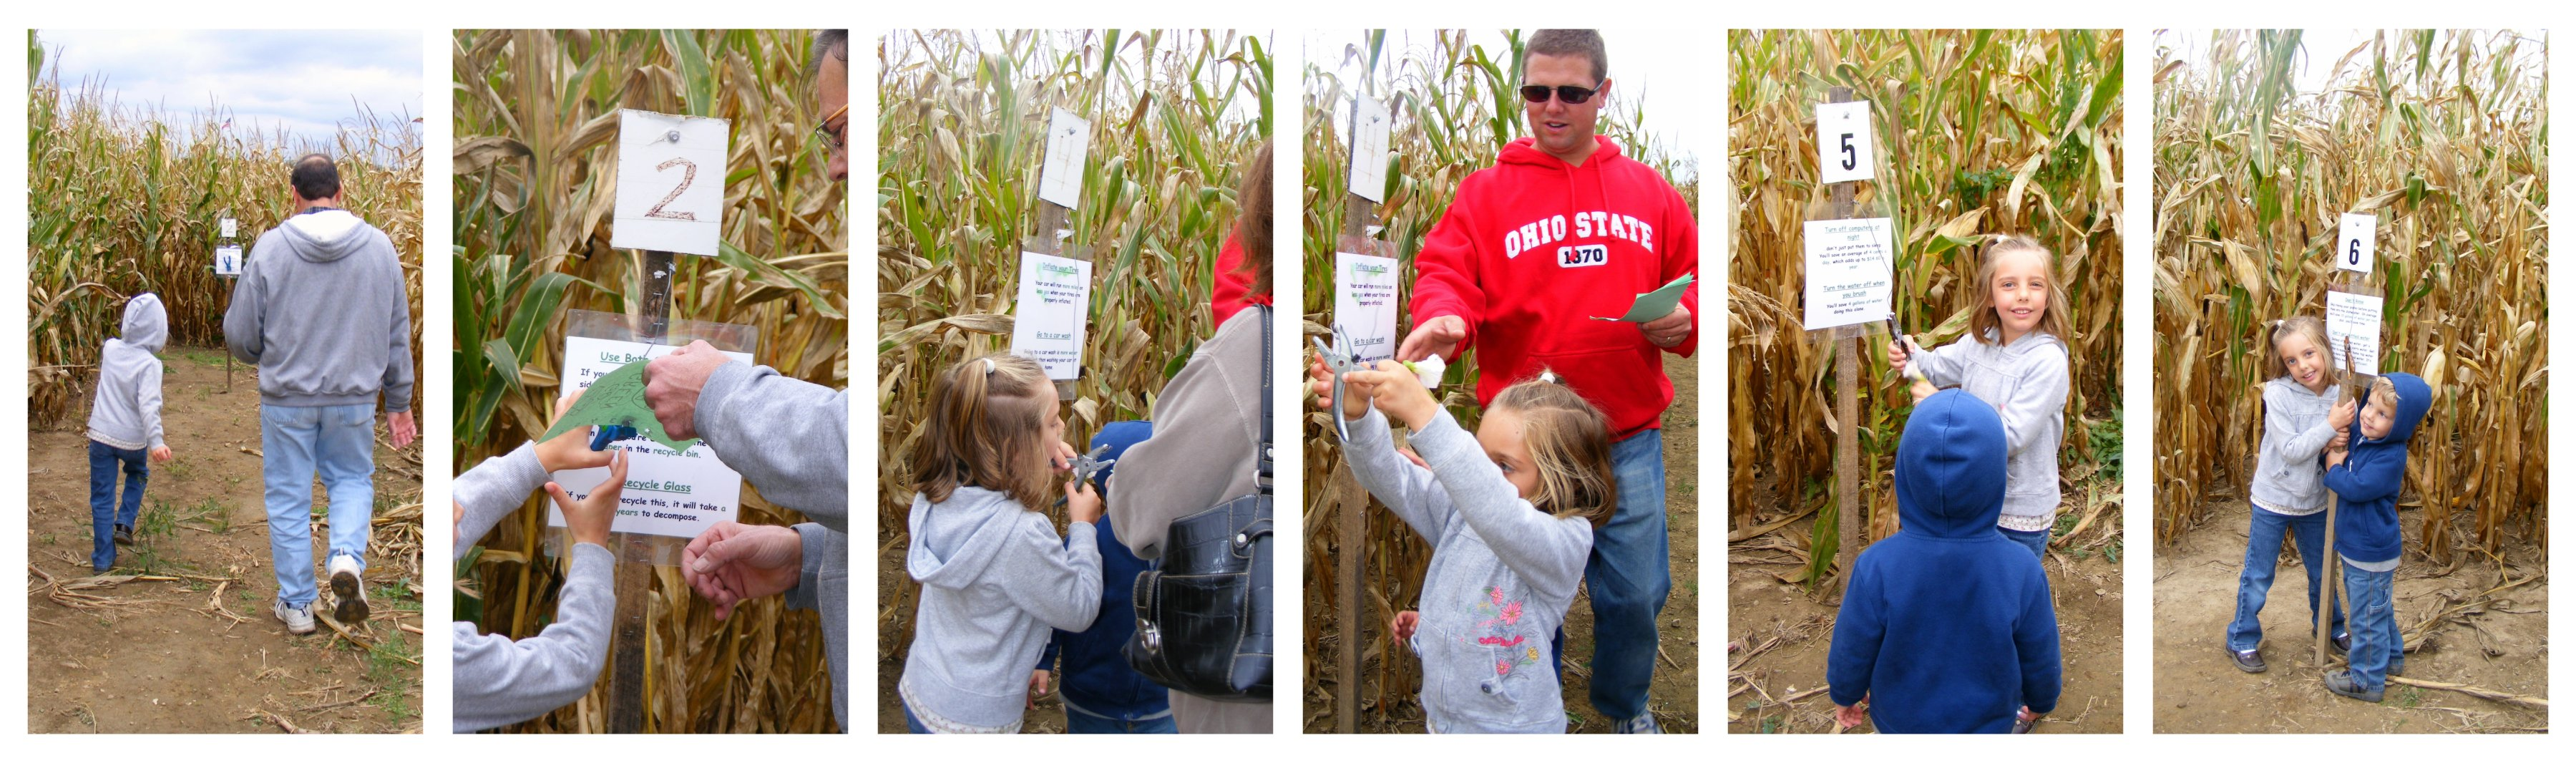 corn maze number collage